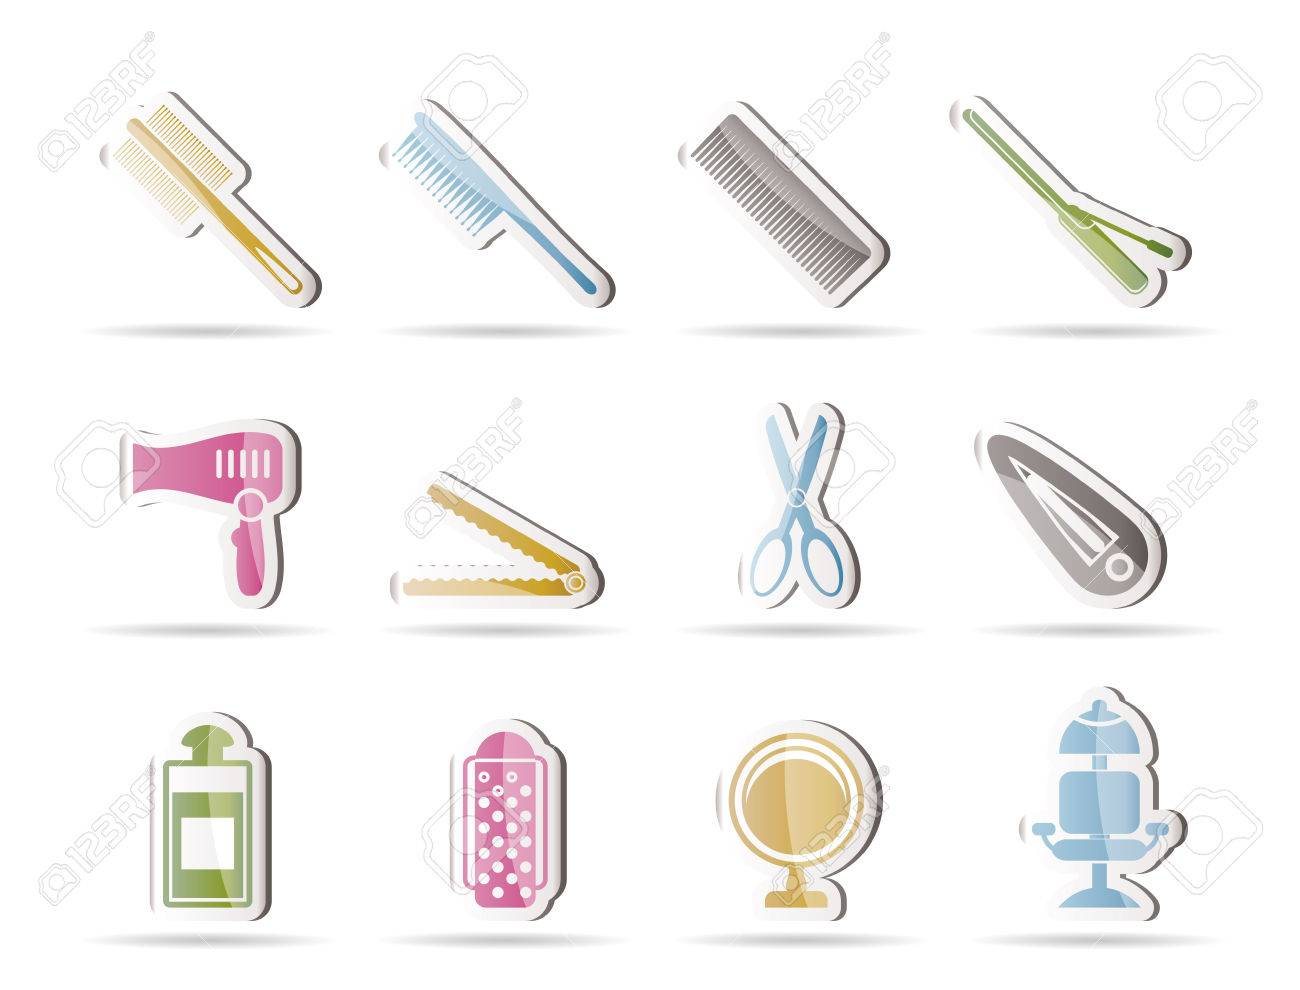 hairdressing, coiffure and make-up icons  - vector icon set Stock Vector - 8033127